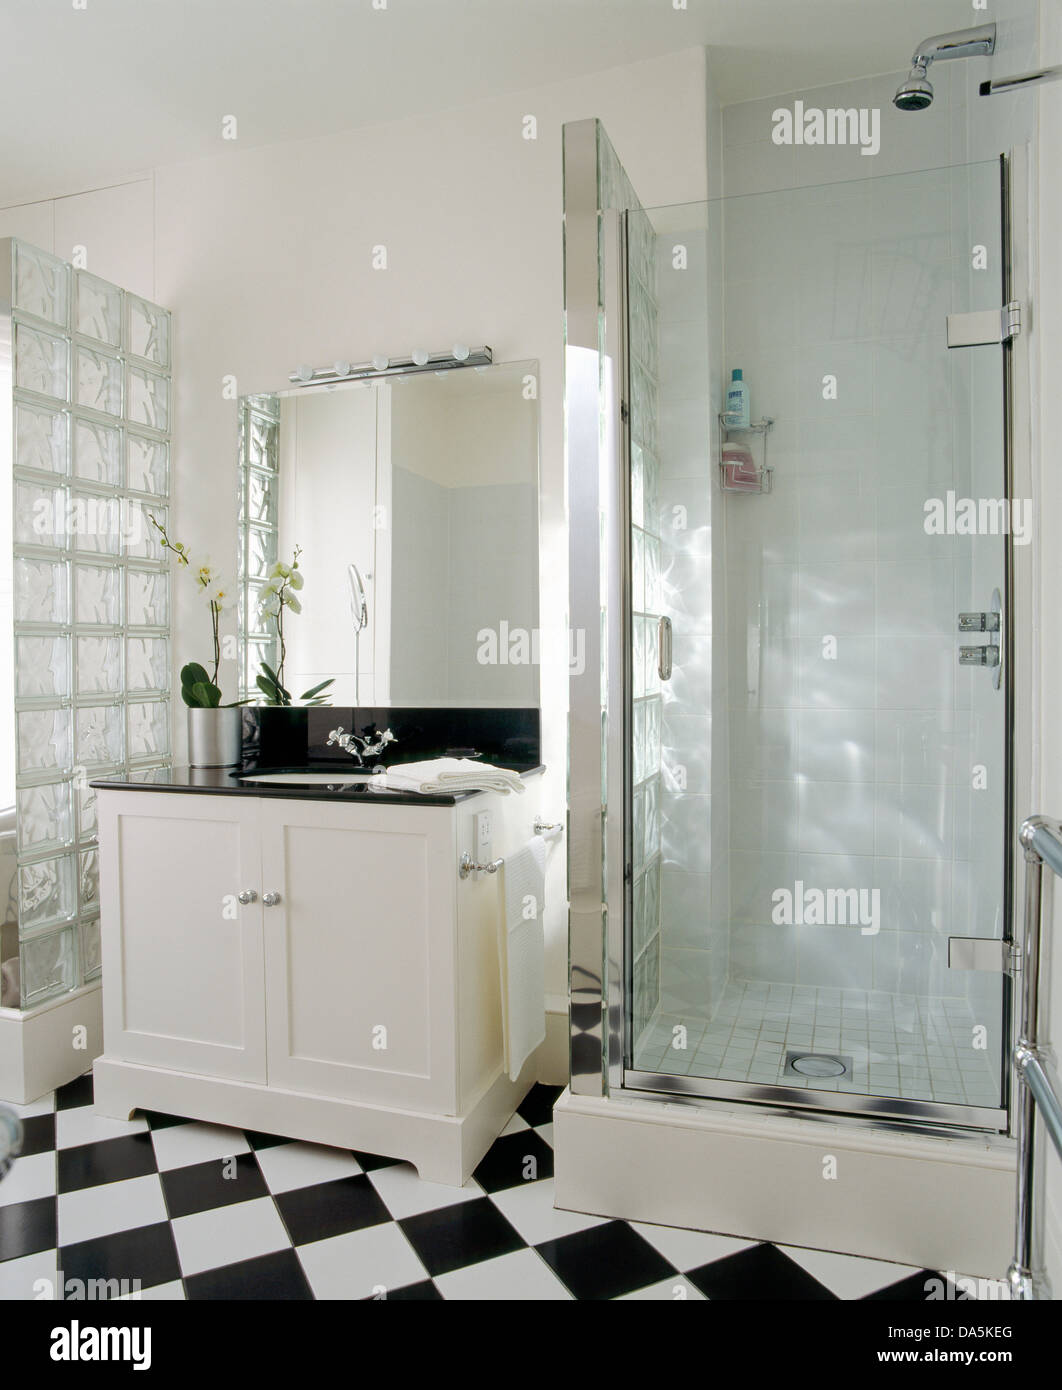 Mirror above wash basin in white vanity unit beside glass shower ...